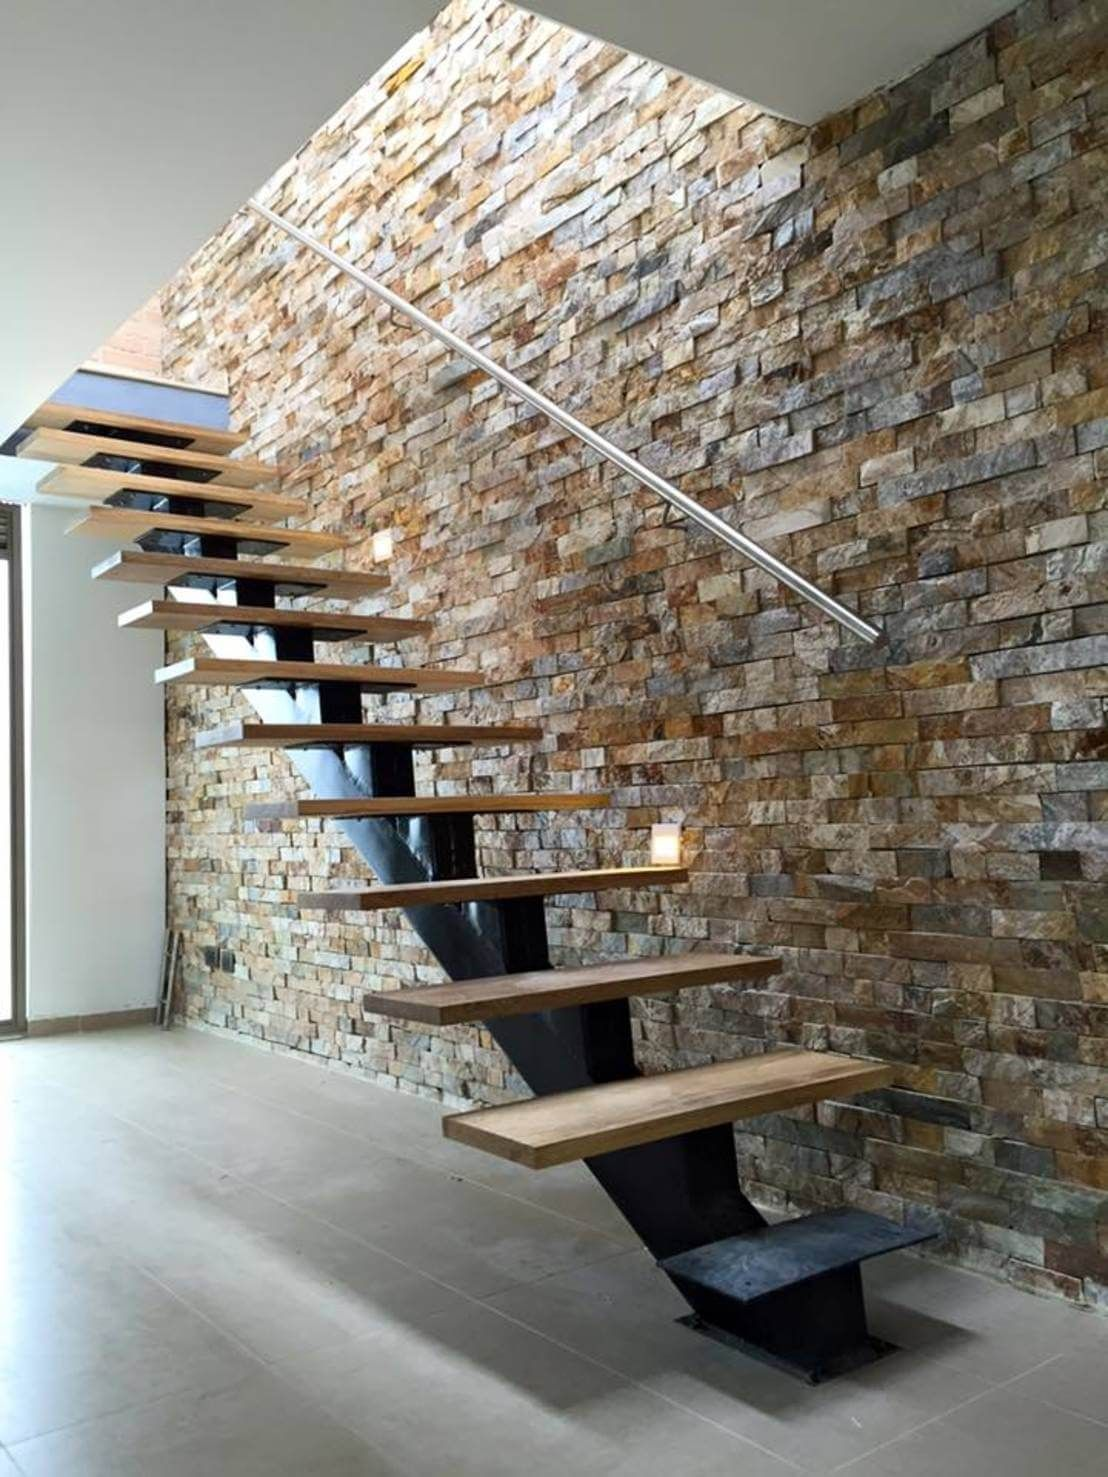 Modern design meets natural beauty staircases stone texture couleurs claires architecture modern